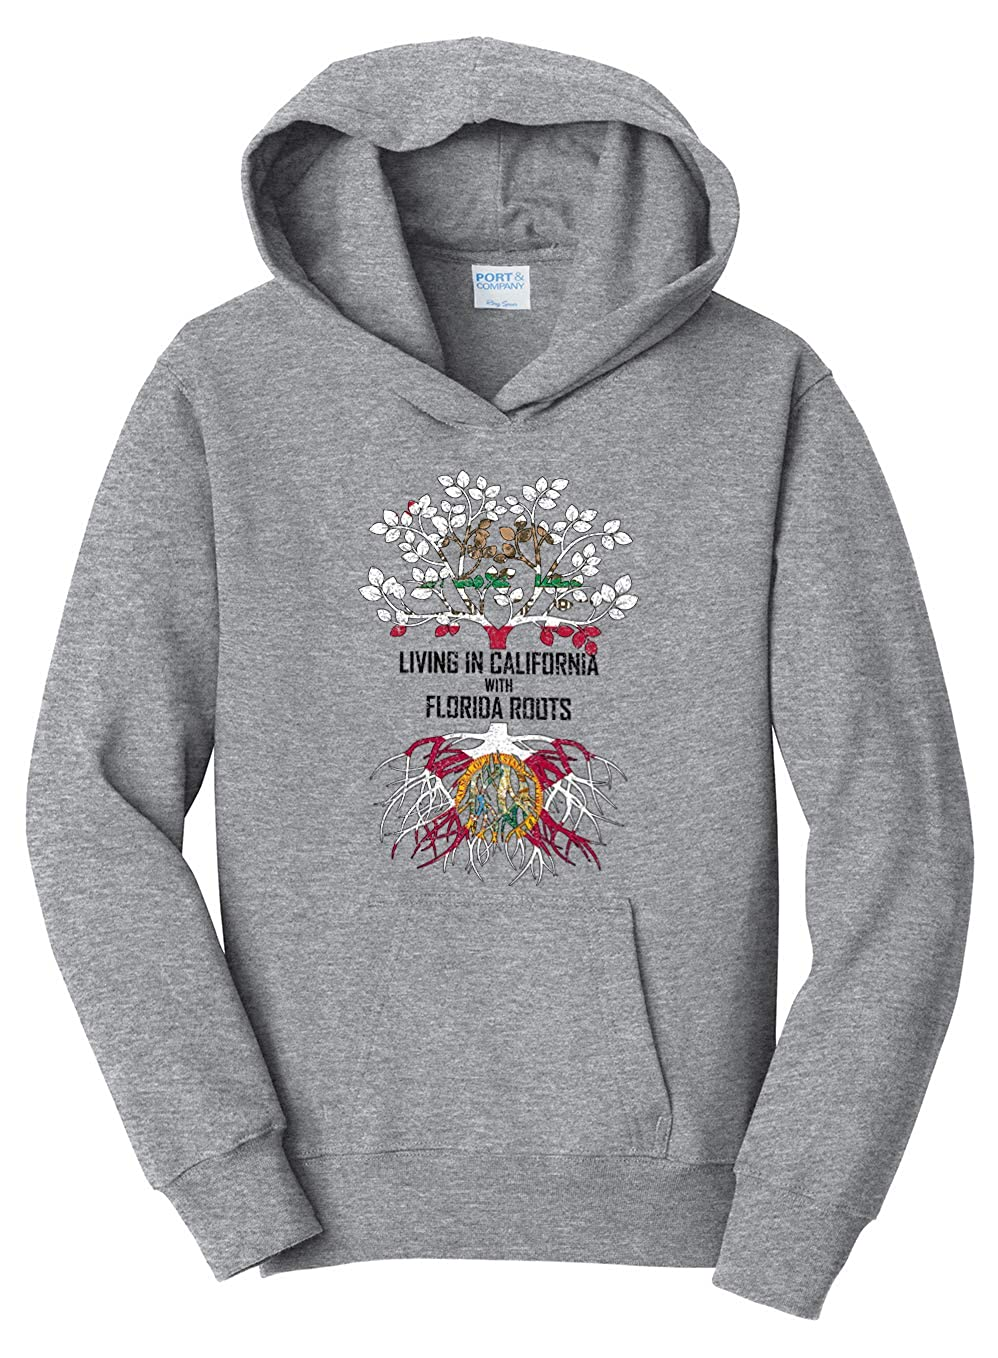 Tenacitee Girls Living in California with Florida Roots Hooded Sweatshirt